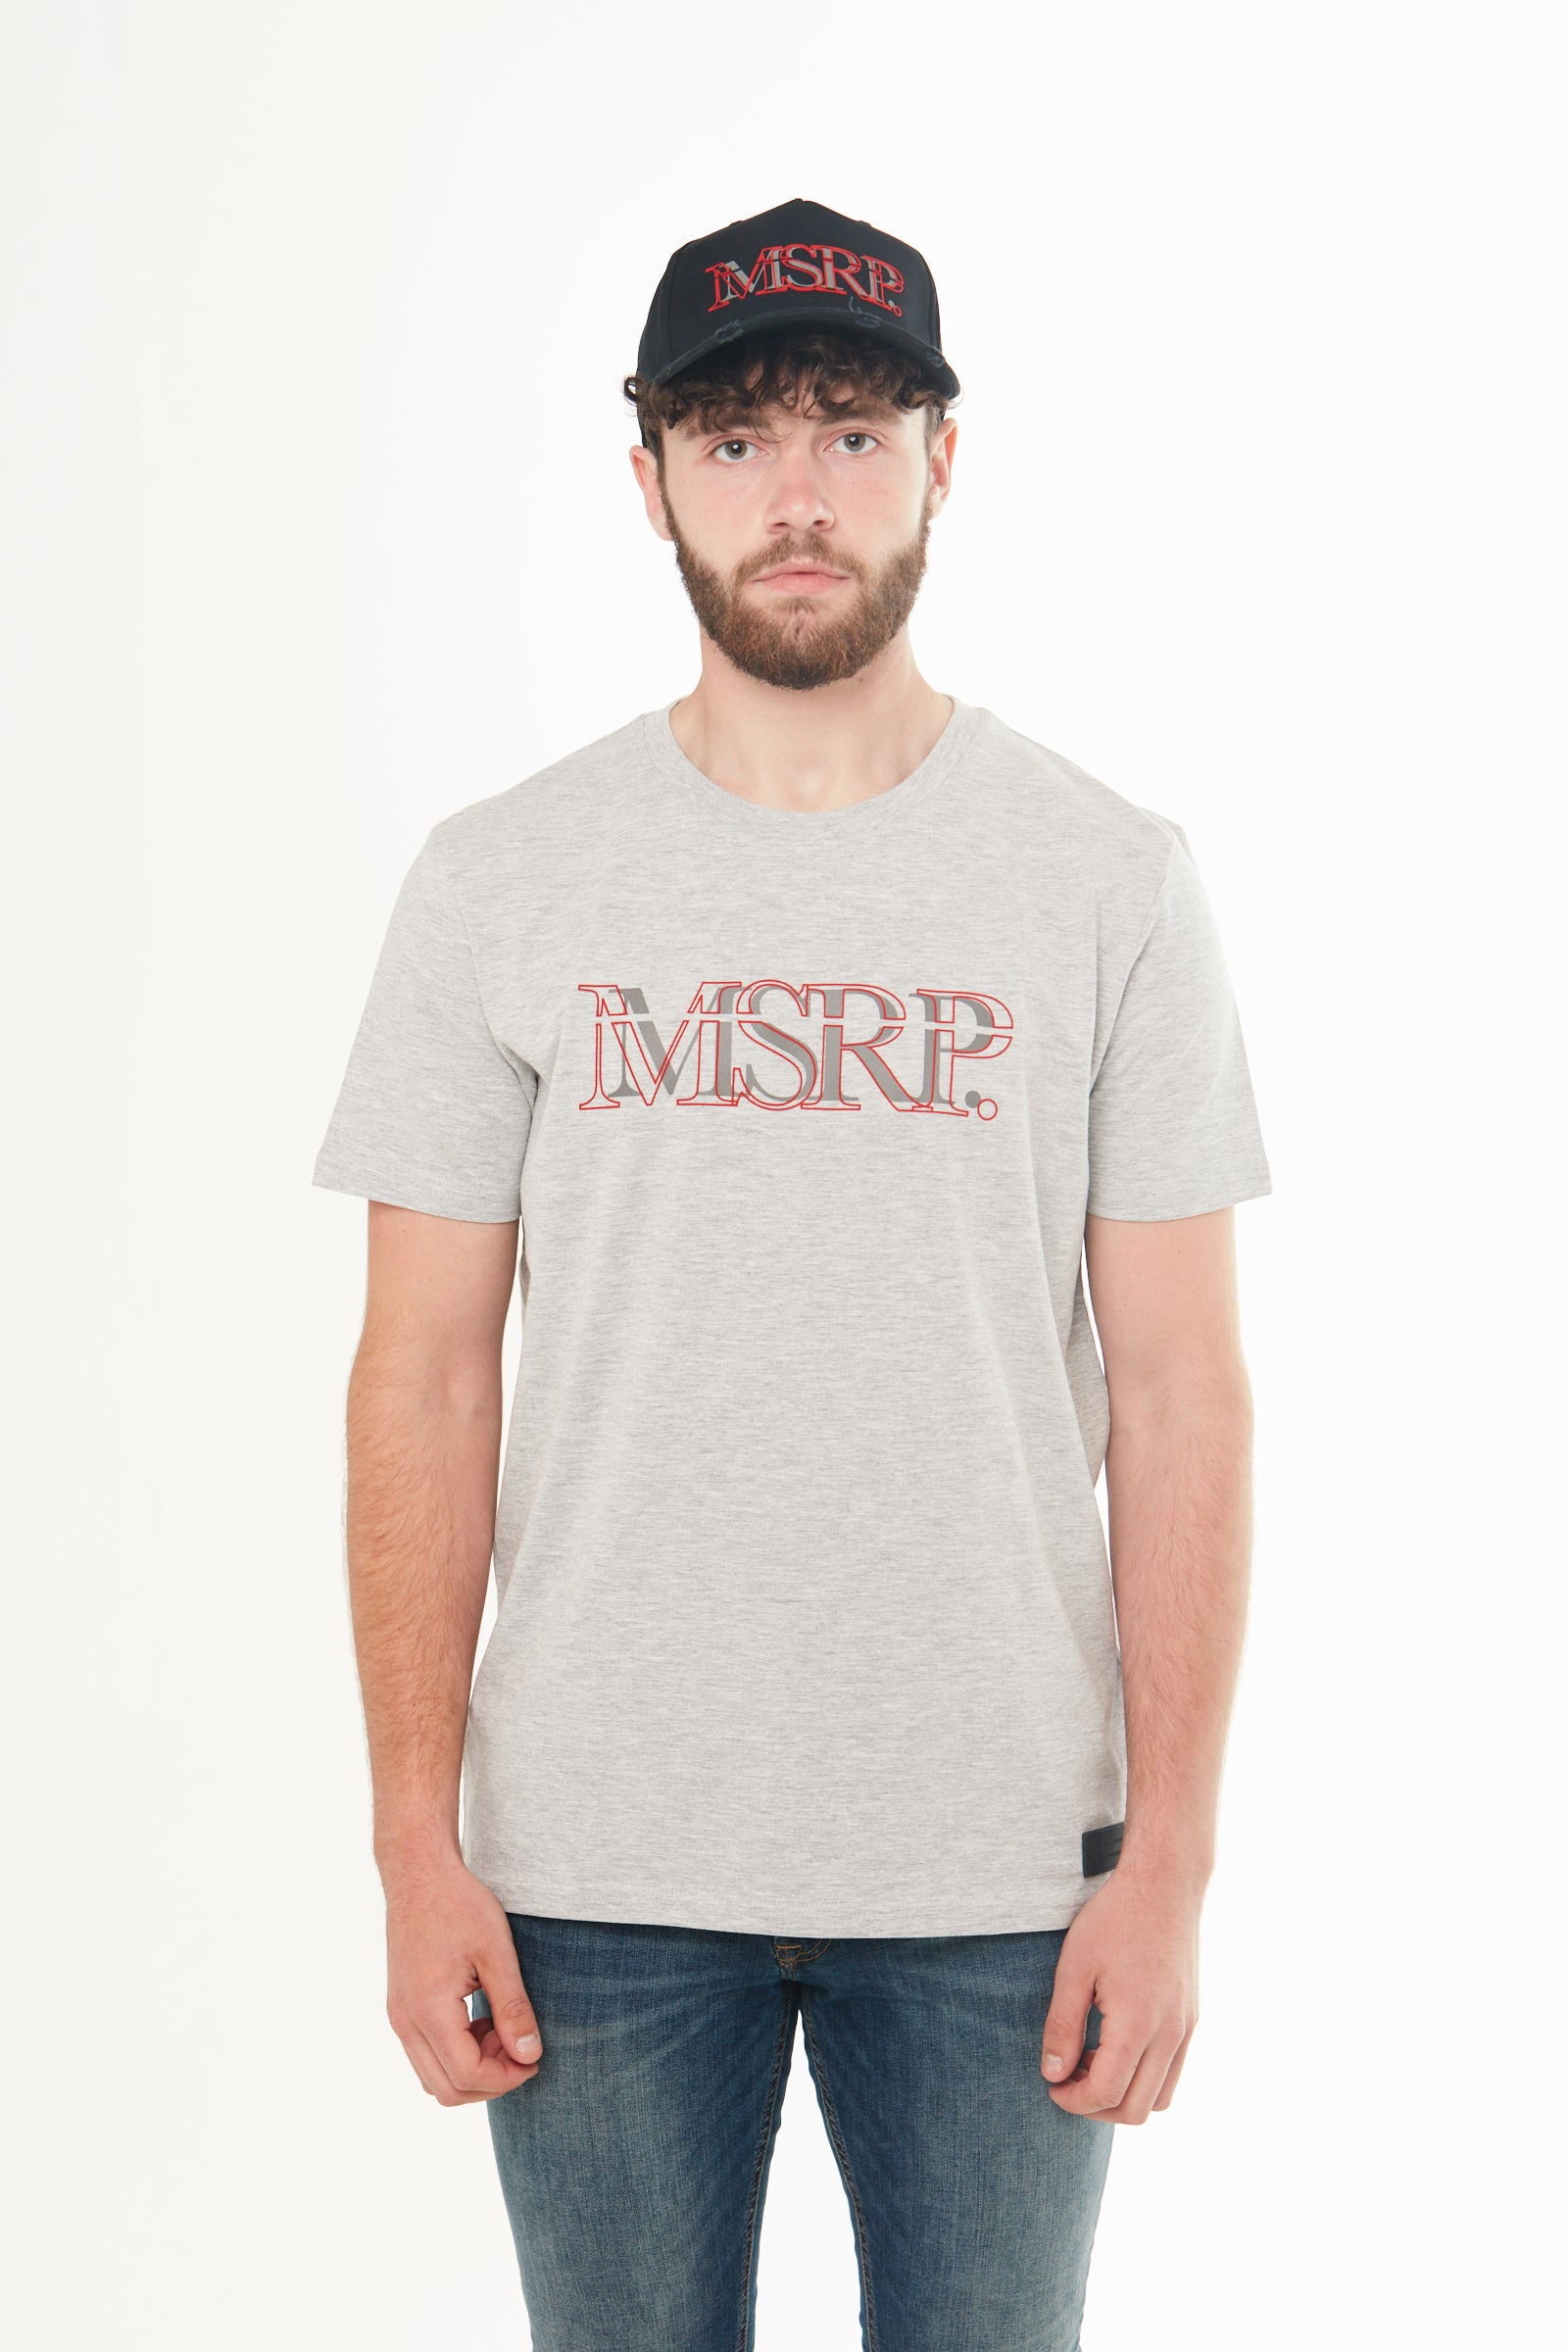 Red Offset MSRP T-Shirt (Grey)